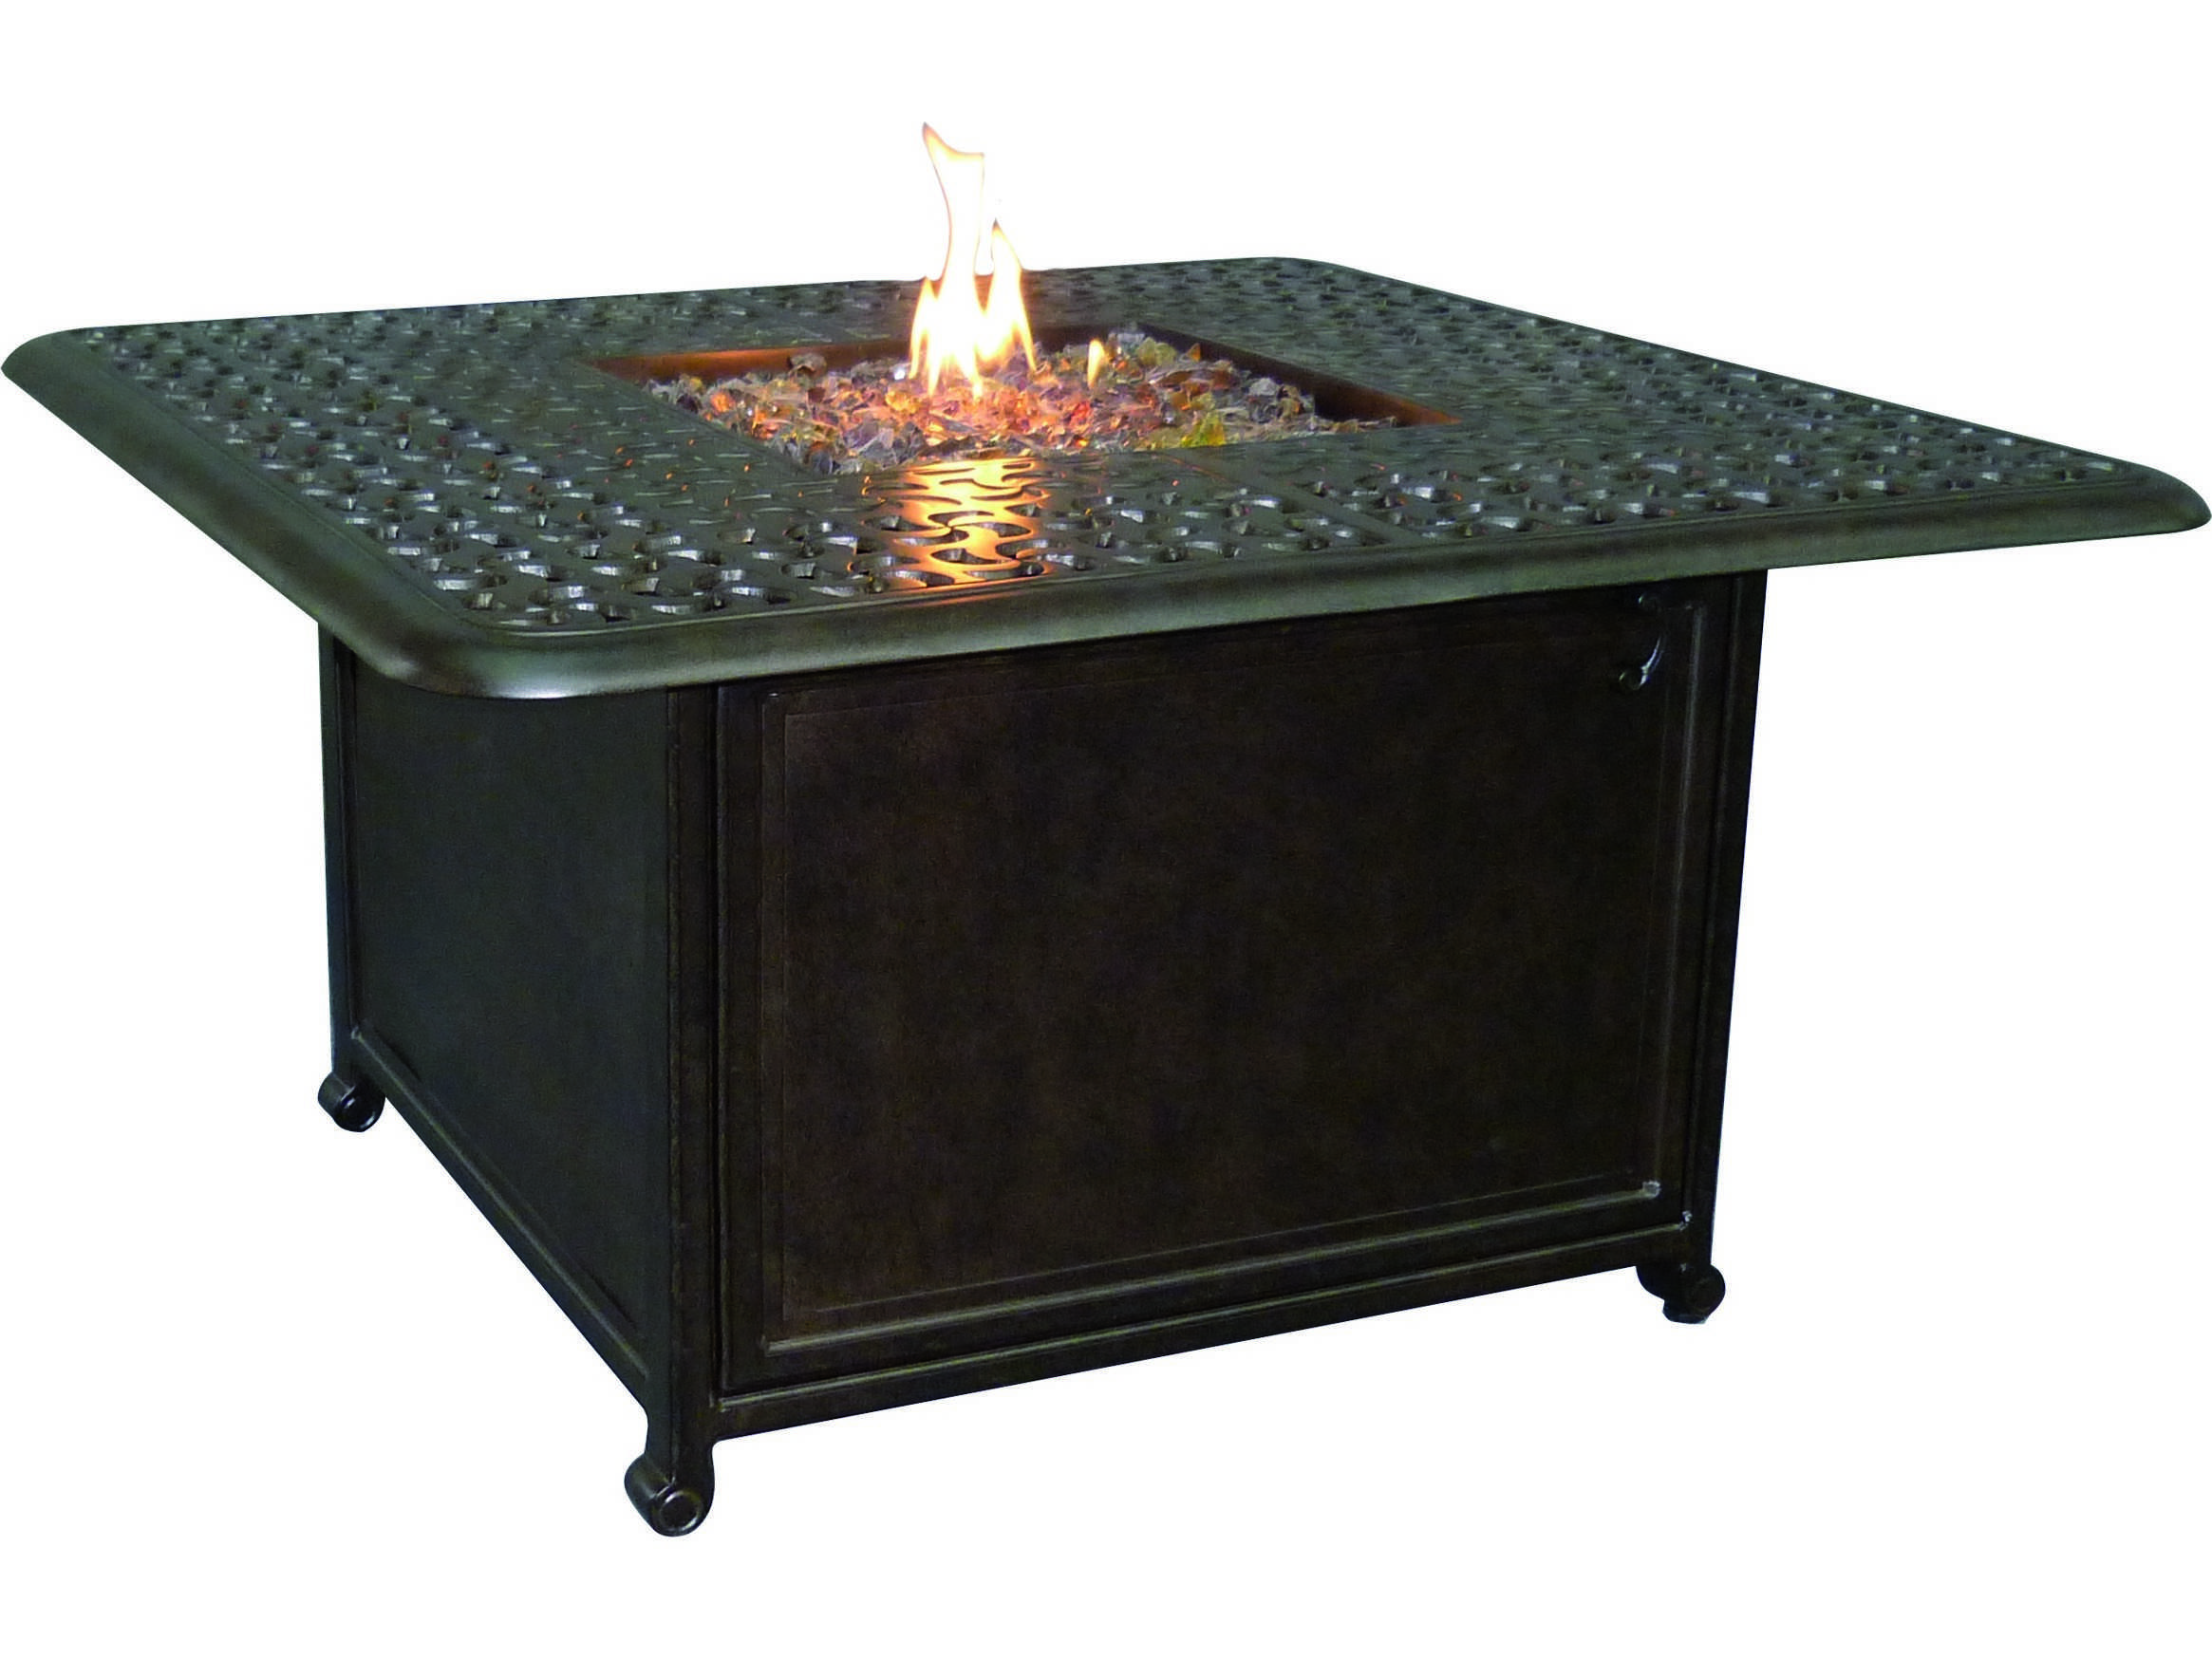 Castelle Sienna Cast Aluminum 42 Square Sienna Coffee Table With Firepit And Lid Dsf42wl